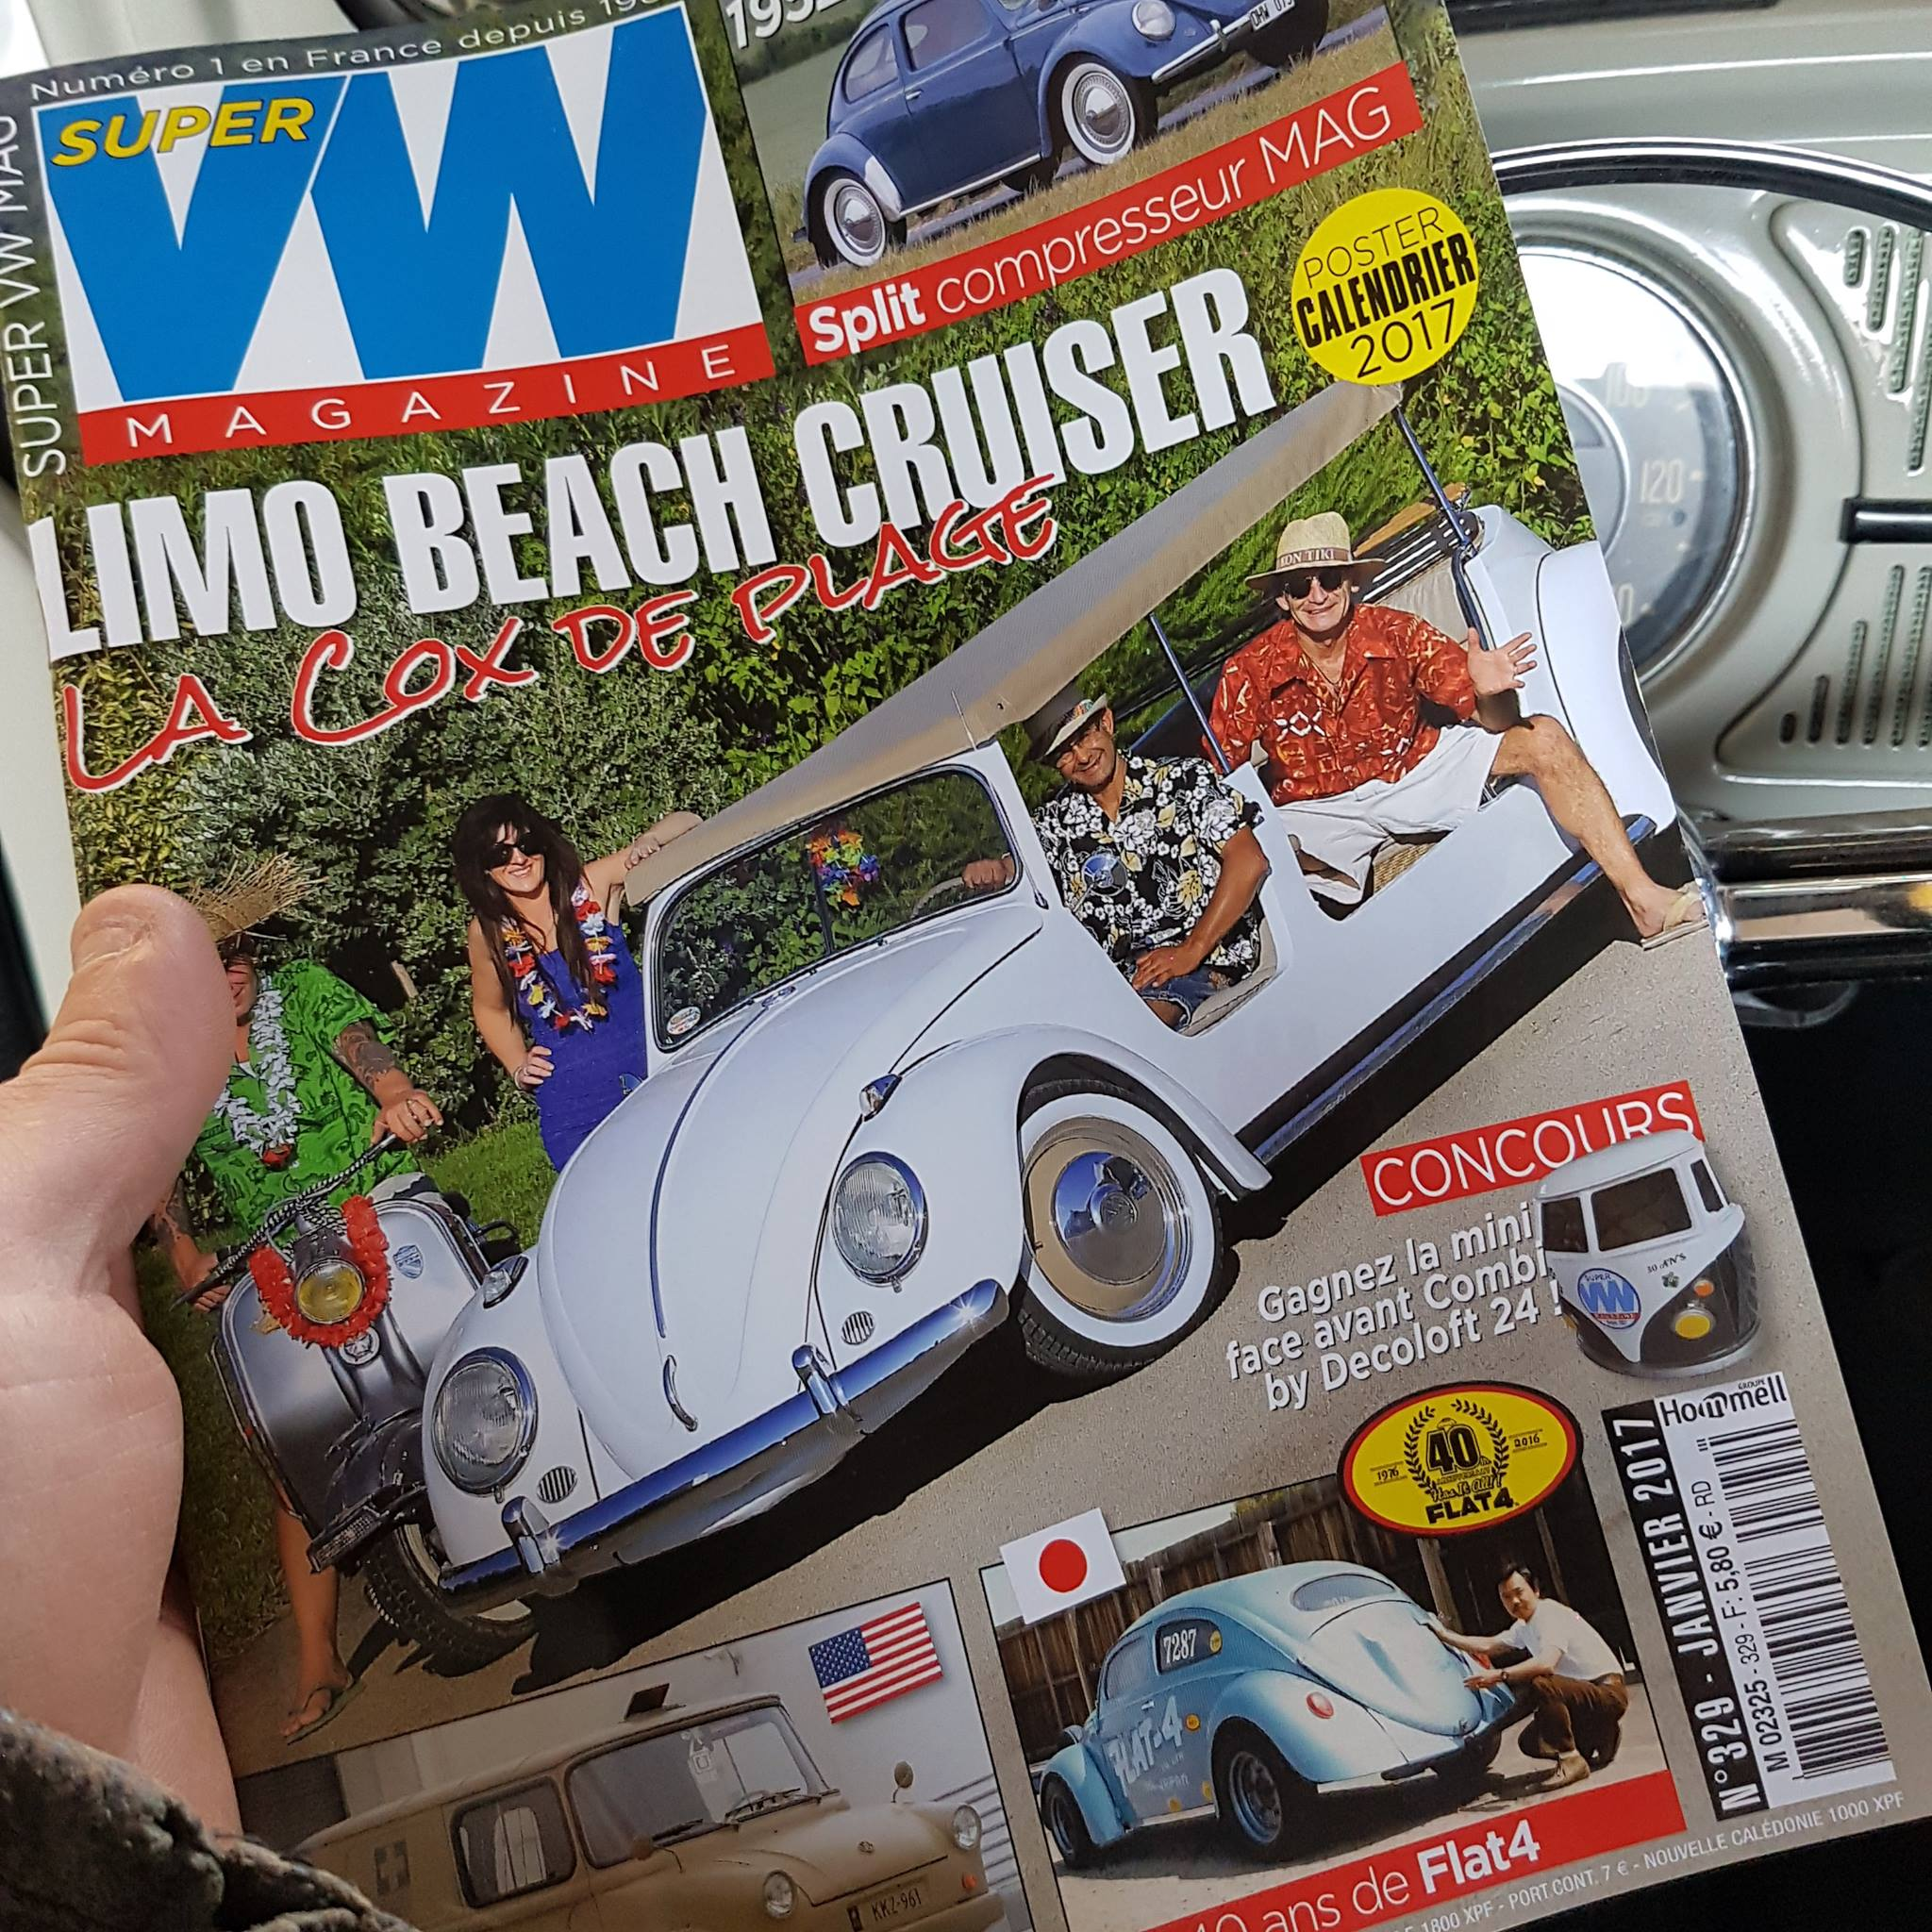 Decoloft 24 à la une du Super VW magazine